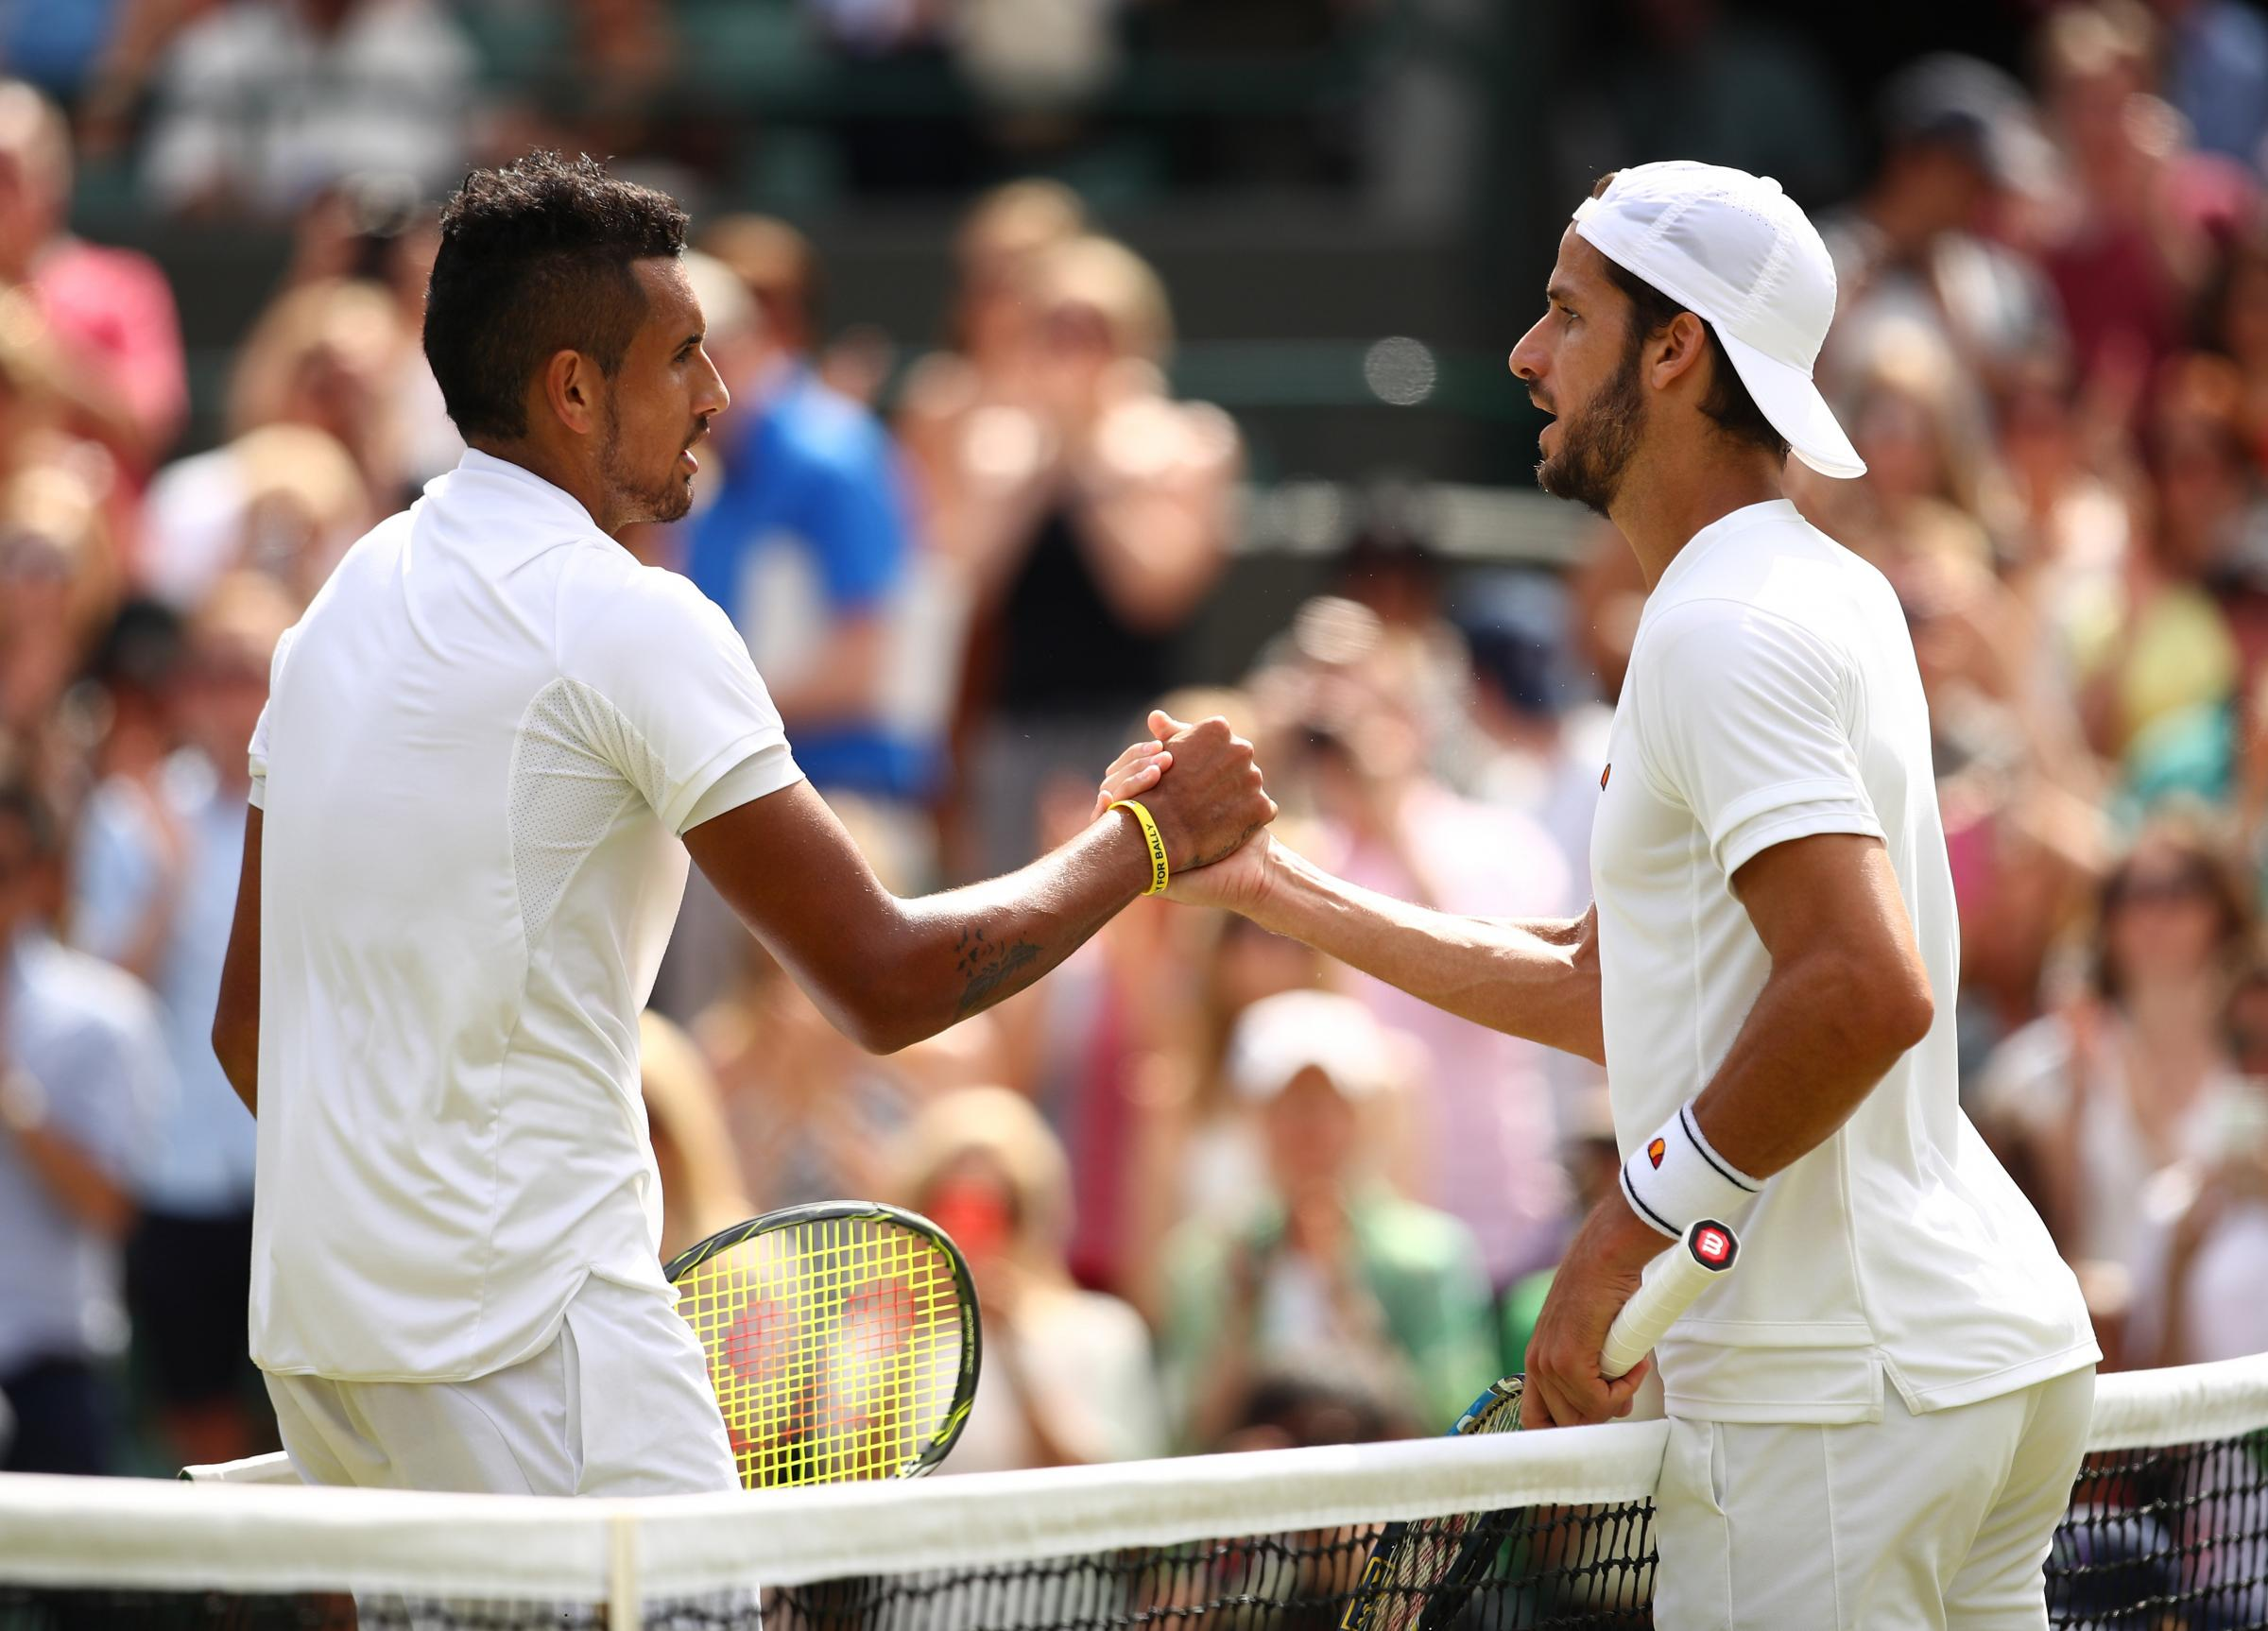 Nick Kyrgios (left) is congratulated by Feliciano Lopez after winning their Wimbledon singles match on People's Sunday yesterday. Picture: Getty